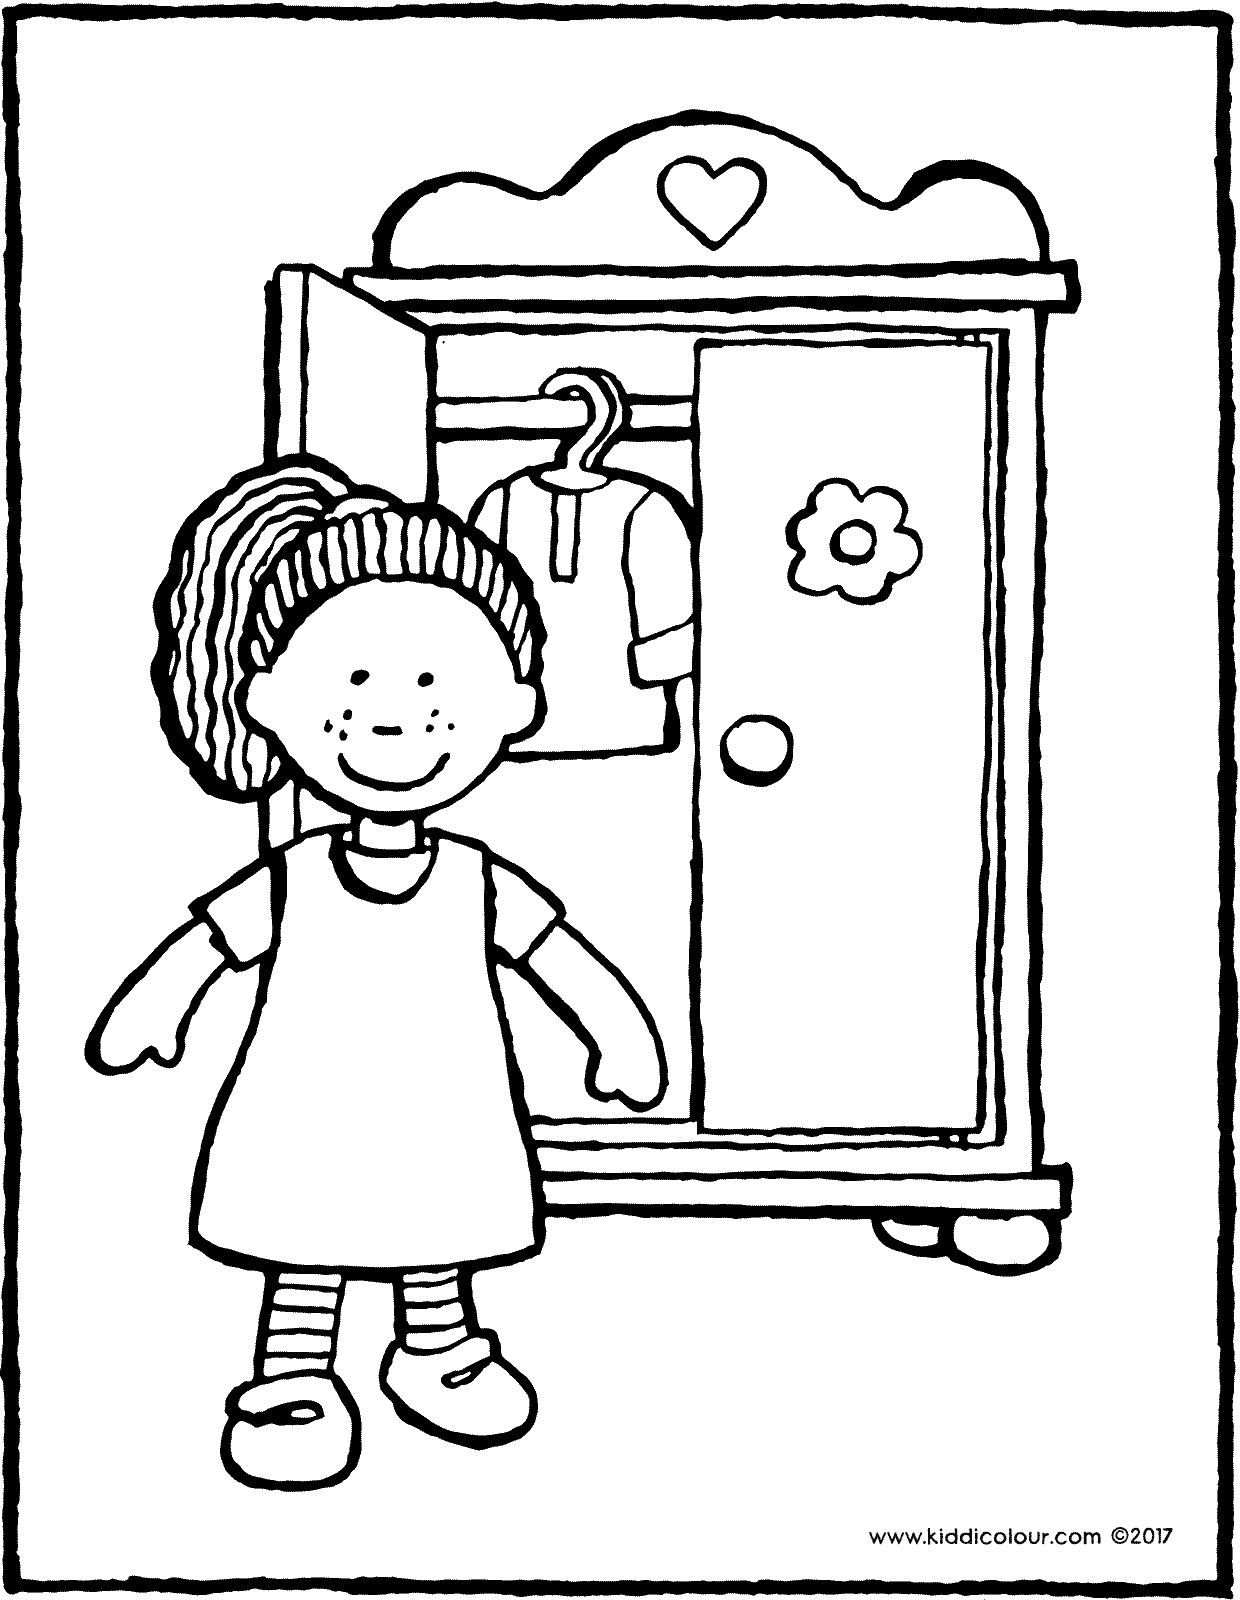 doll with wardrobe colouring page drawing picture 01V